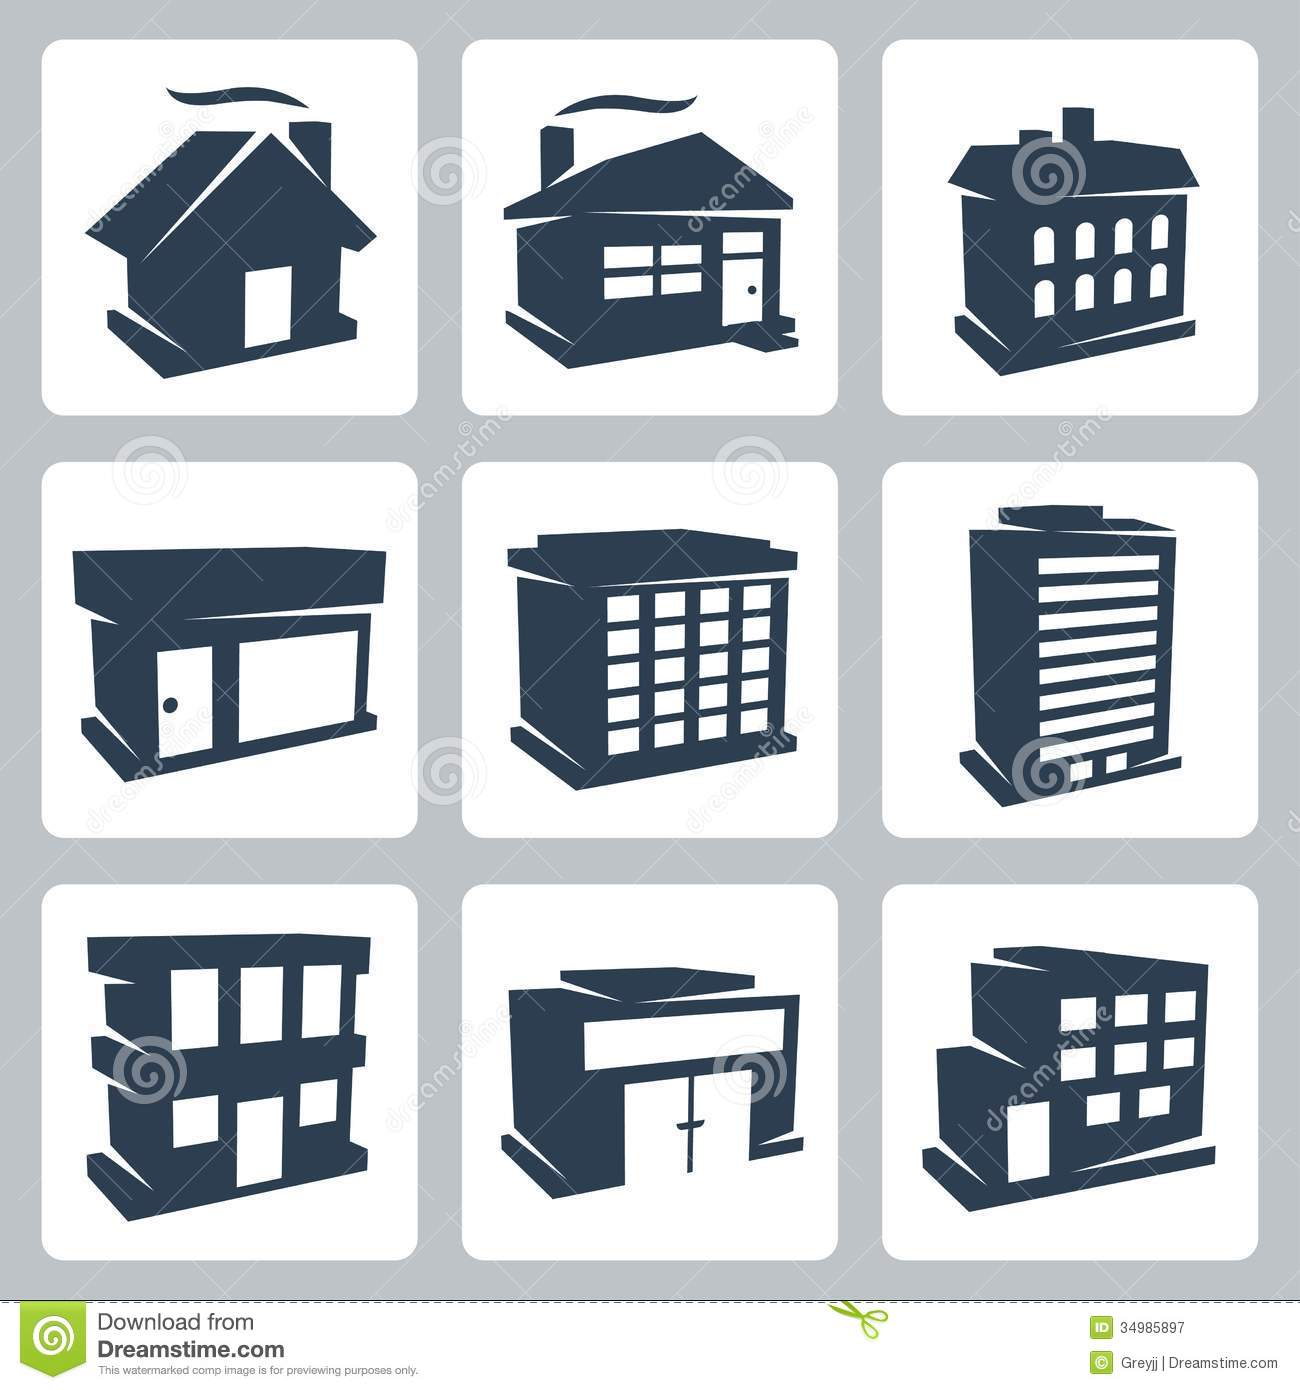 Hd wallpapers building icons vector wallpaper android for Office design vector